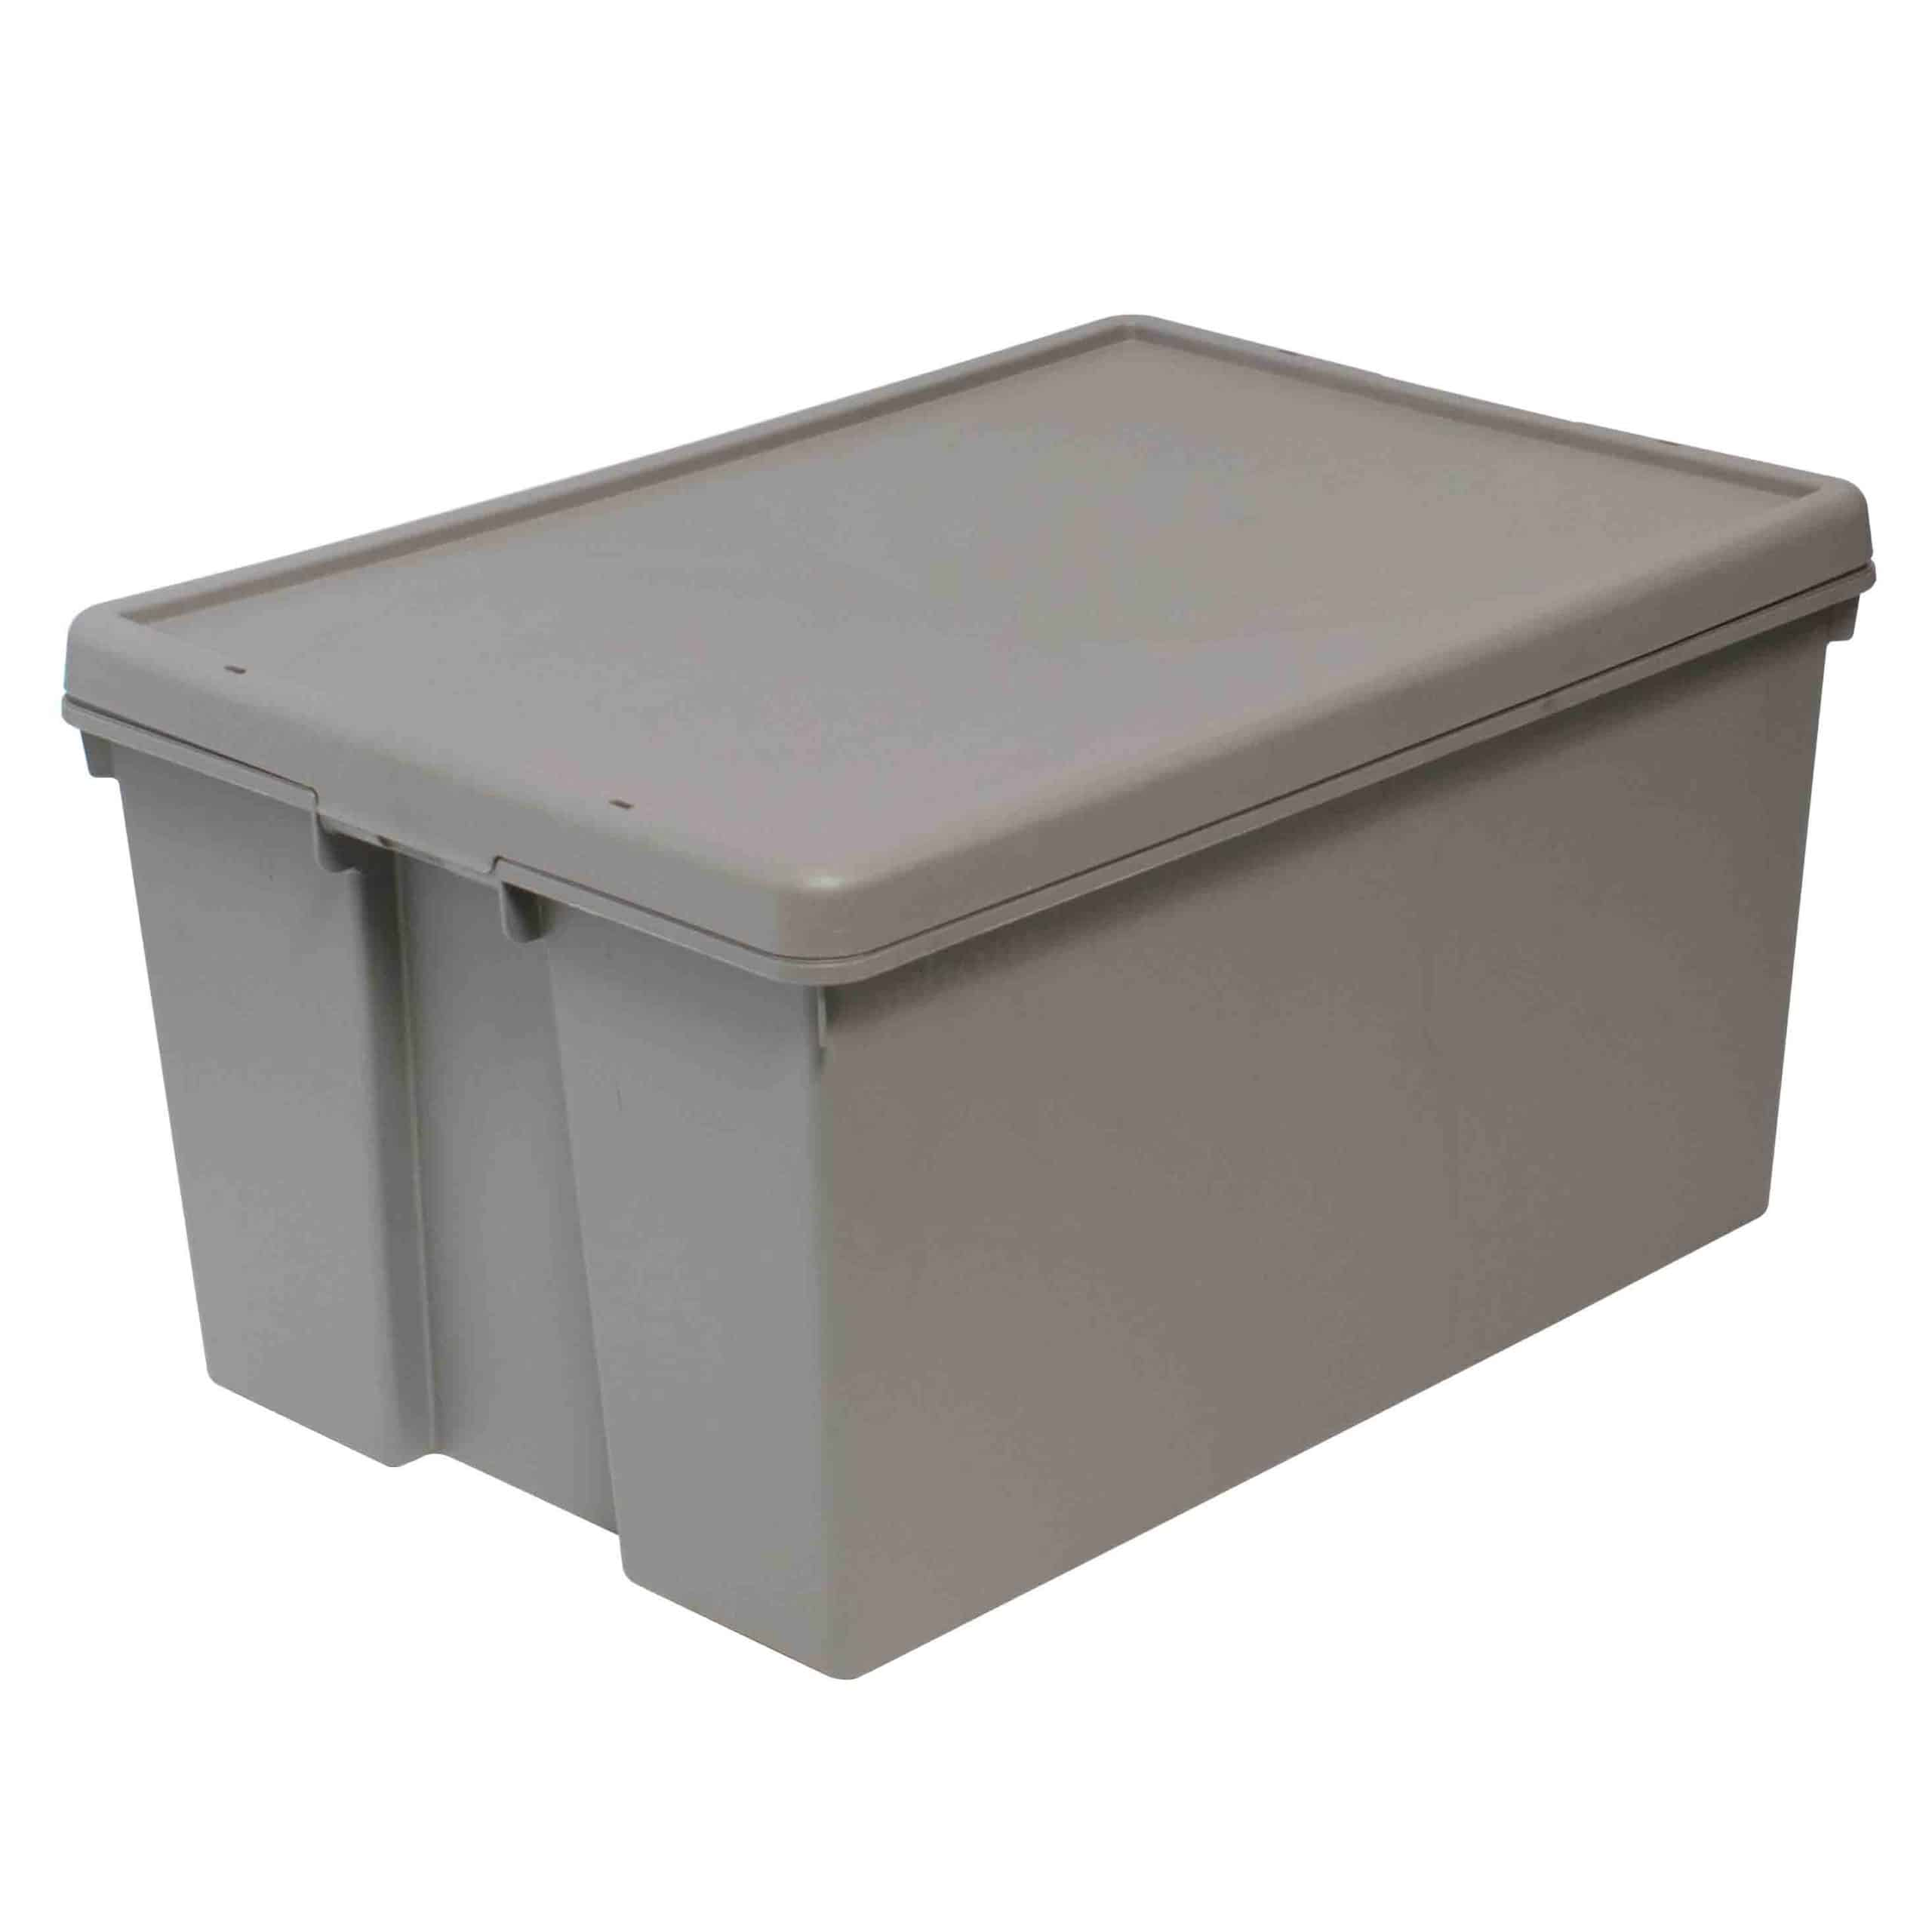 96 Litre Upcycled Plastic Storage Box